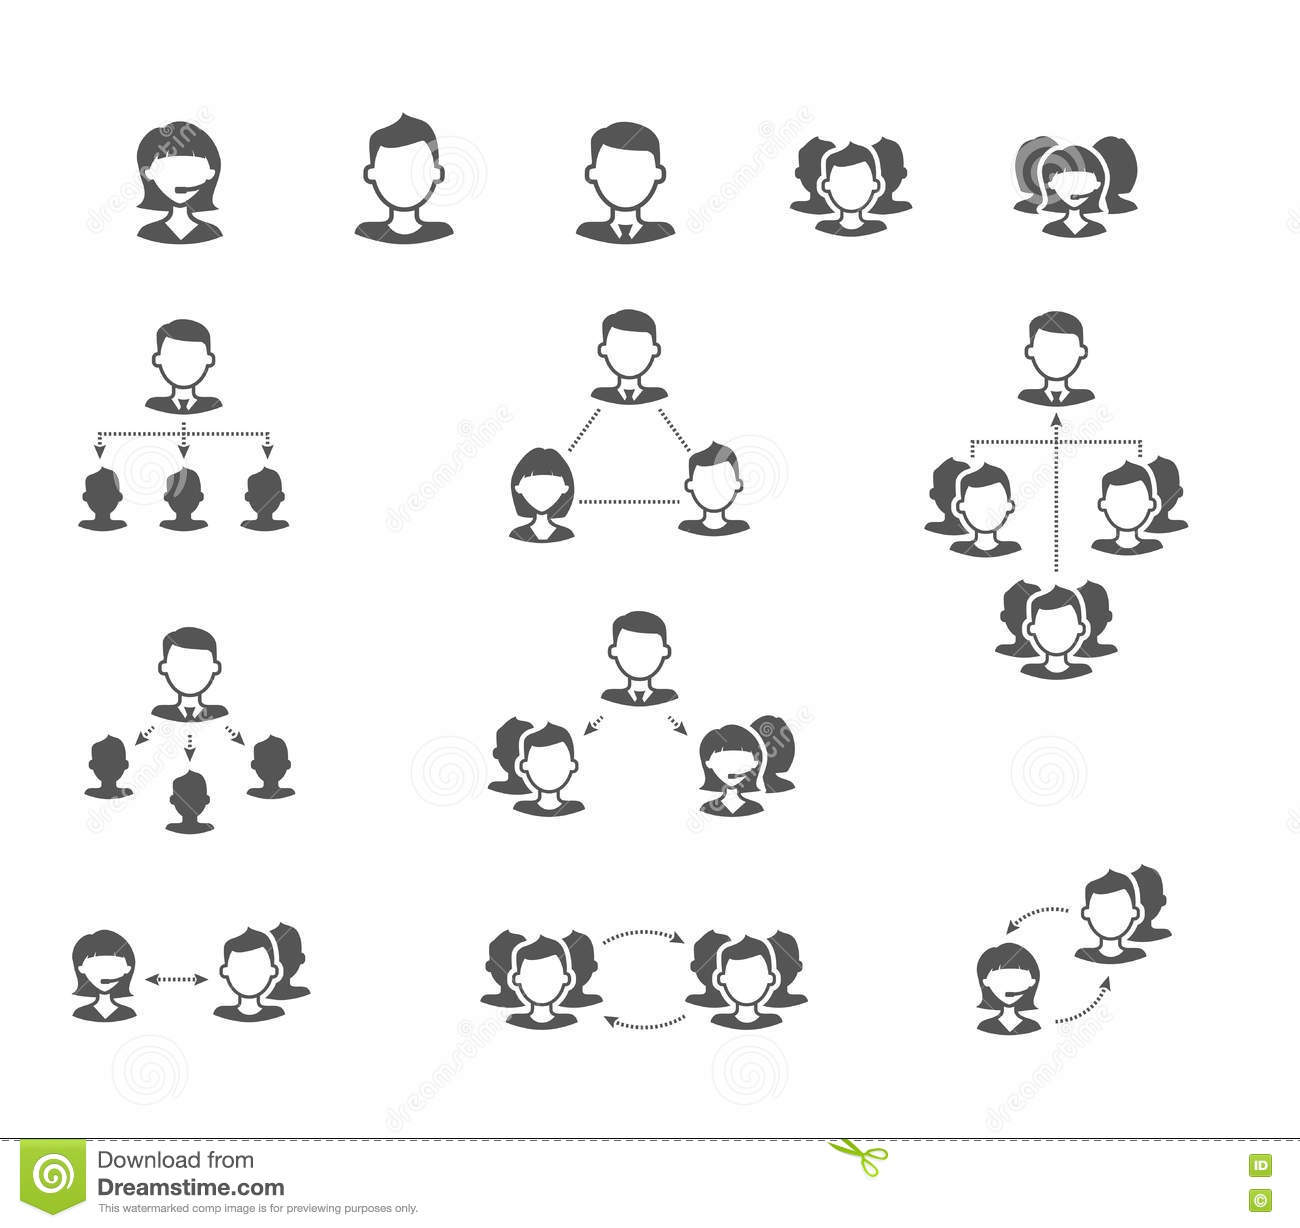 User collaboration diagram flat vector icons stock vector user collaboration diagram flat vector icons pooptronica Choice Image